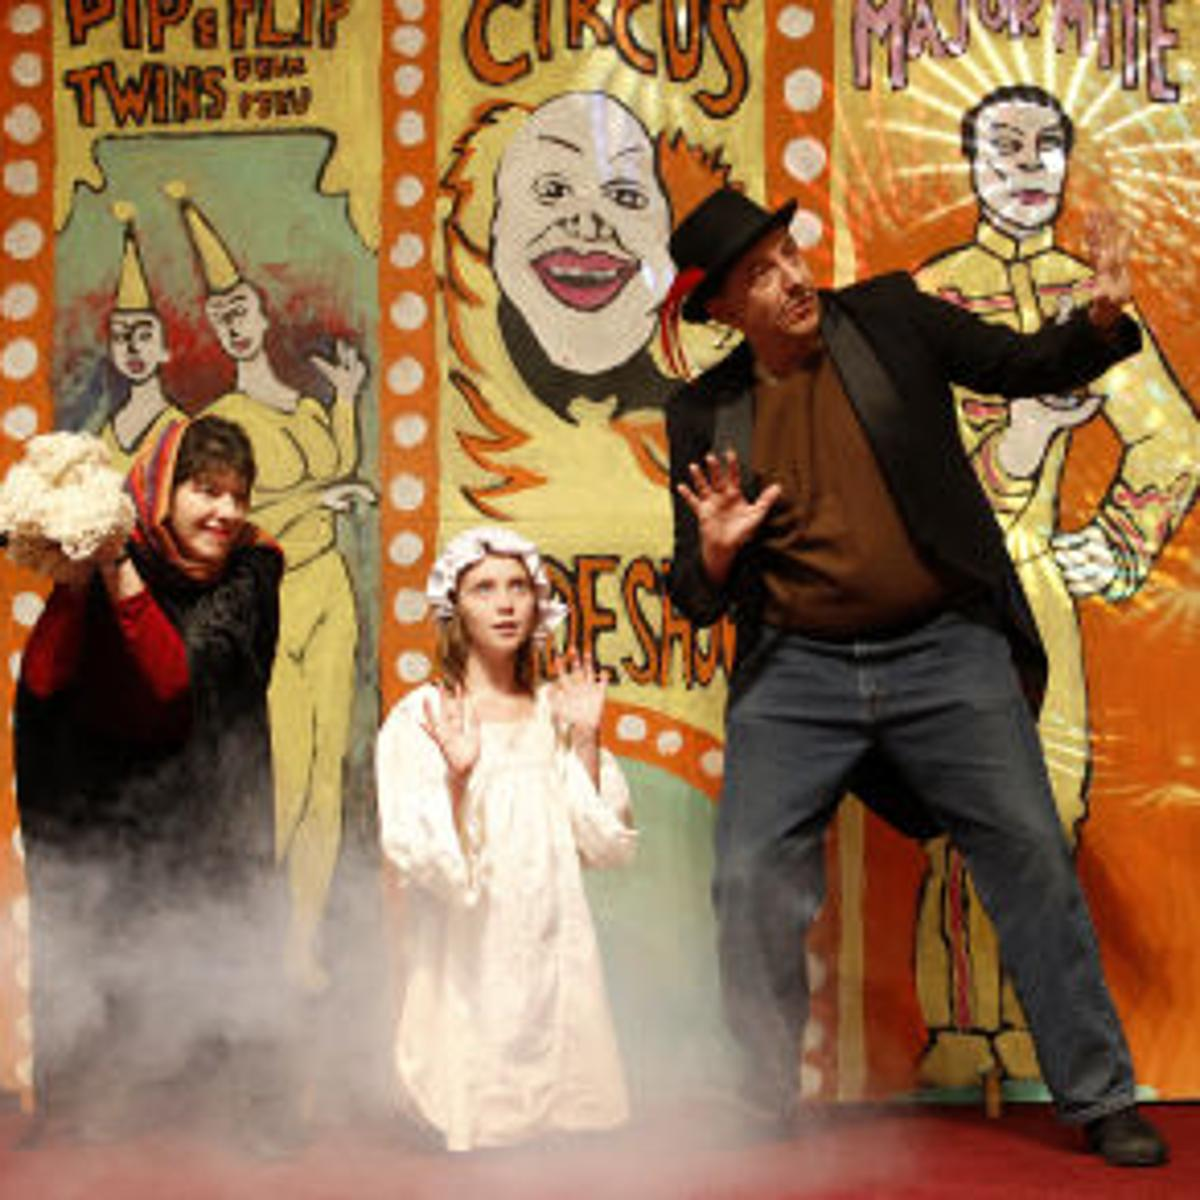 Coney Island Christmas.A Coney Island Christmas Theater Troupe To Present New